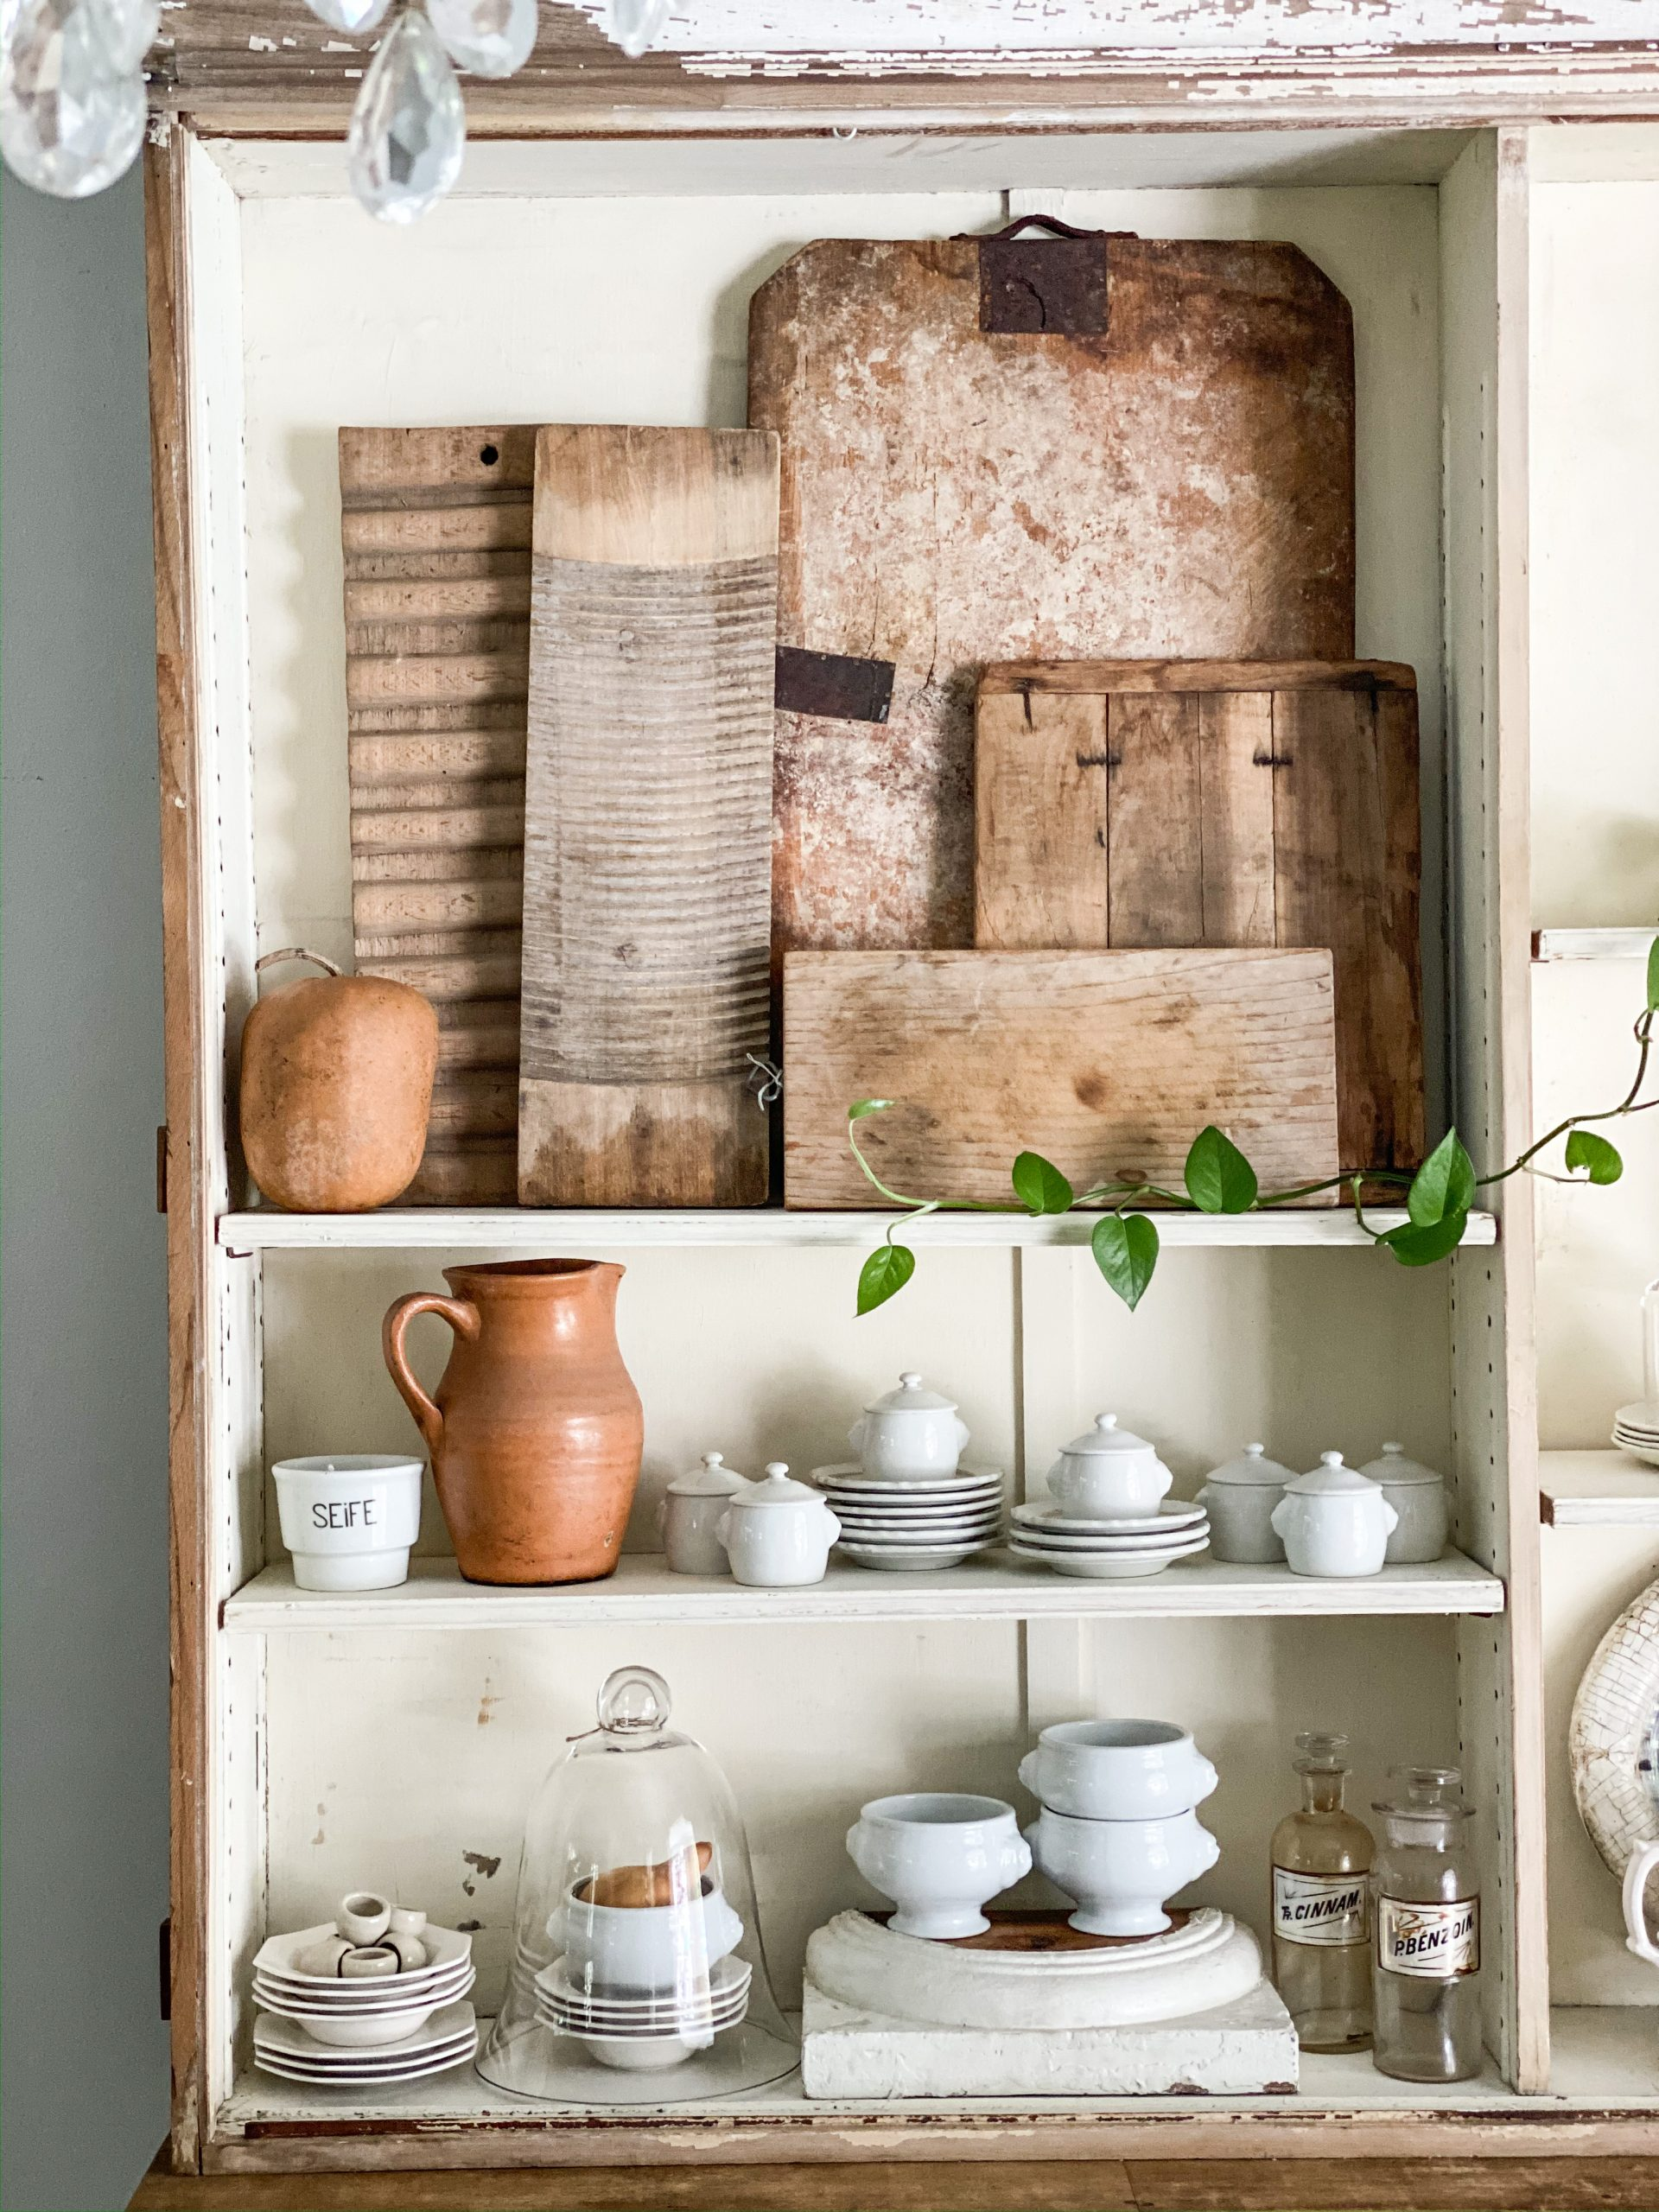 The Best 3 Unique Things for Fall Shelf Styling